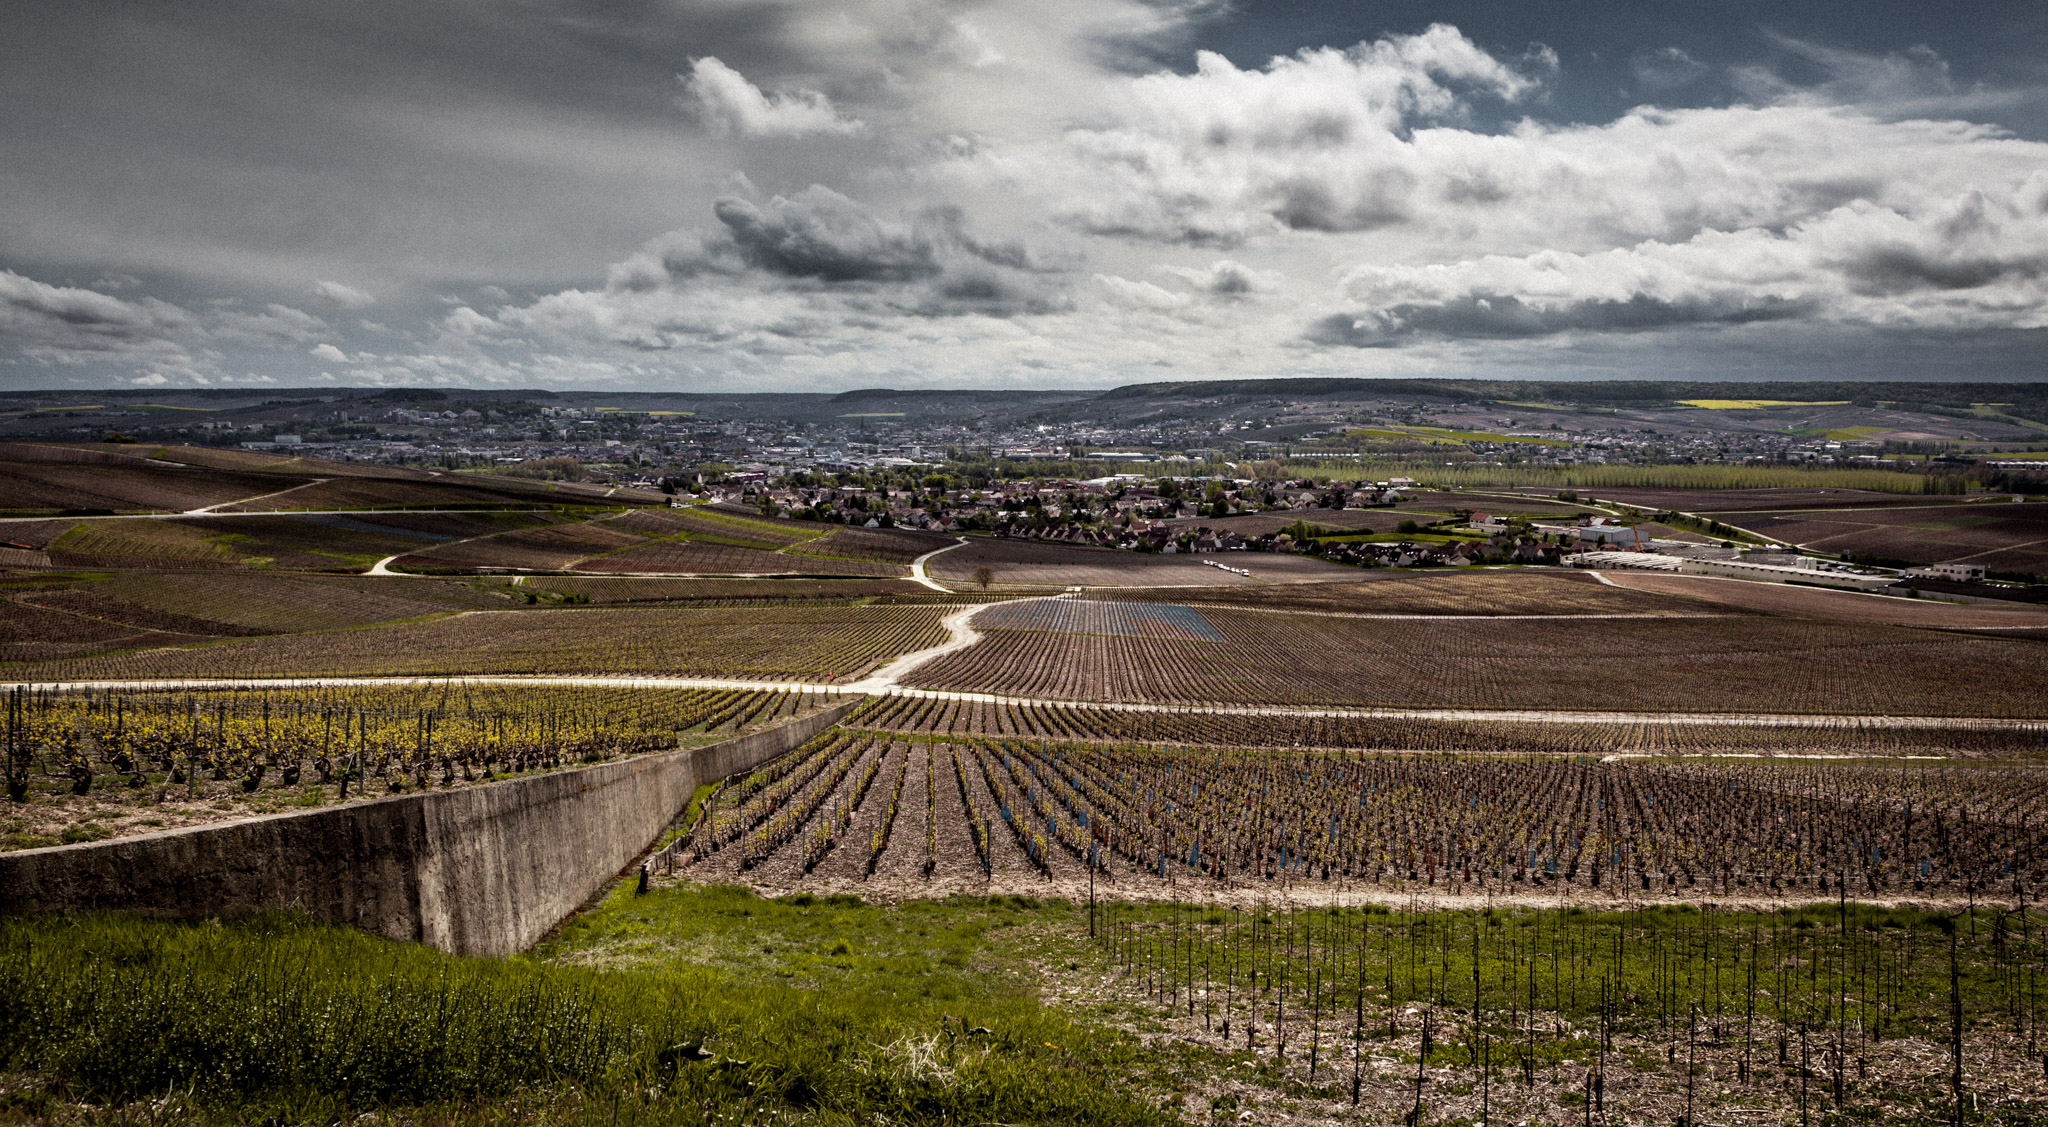 France : Champagne : Vineyards outside the village of Dizy